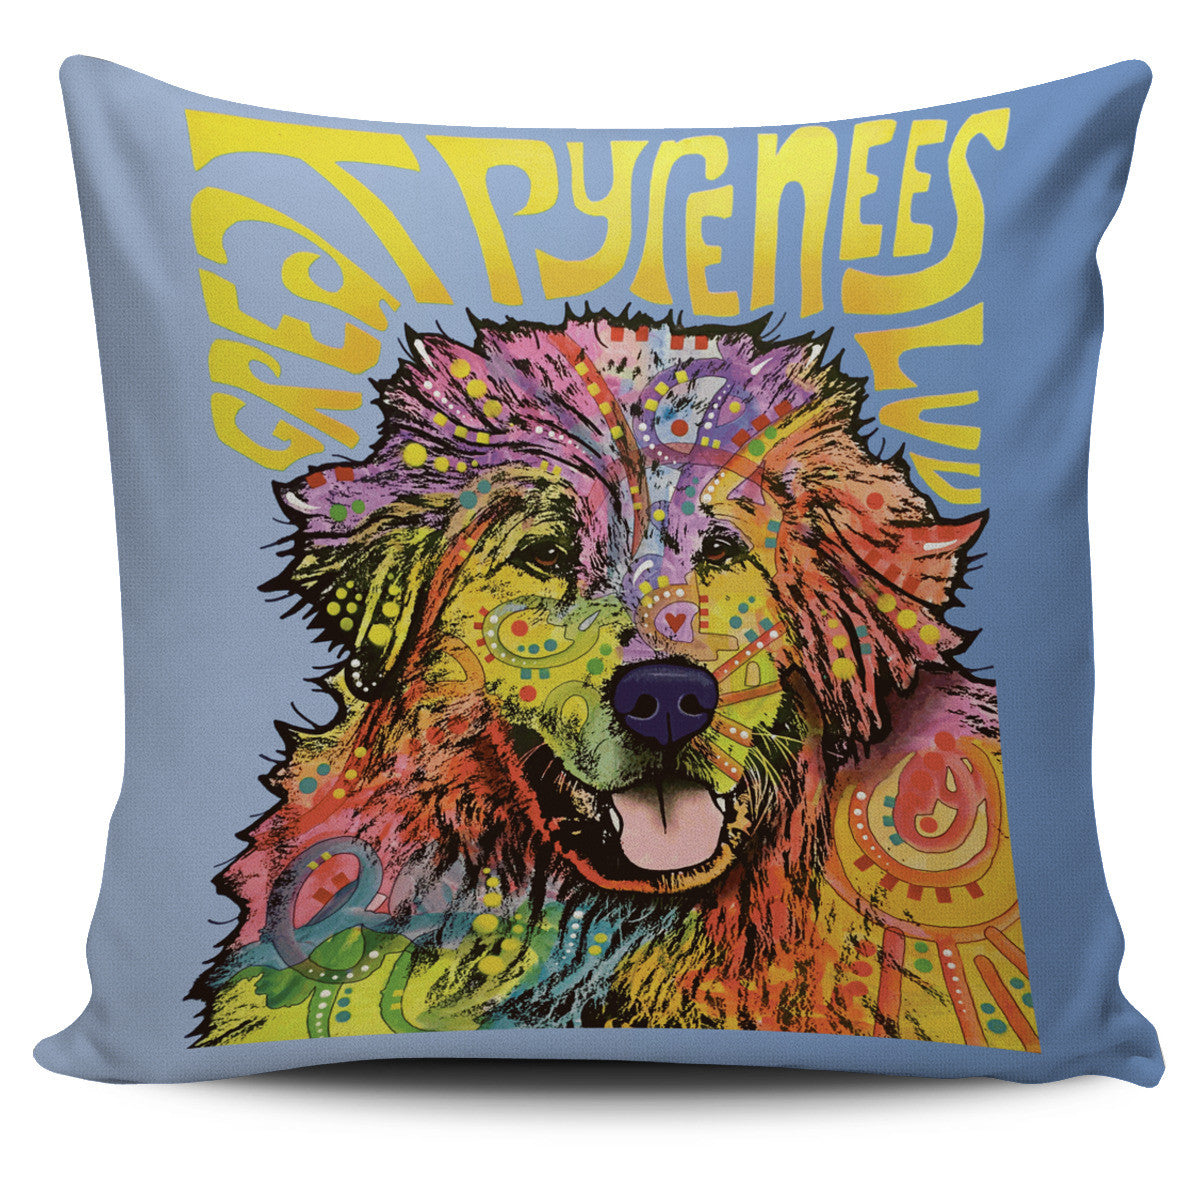 Great Pyrenees Luv Pillow Covers Offer